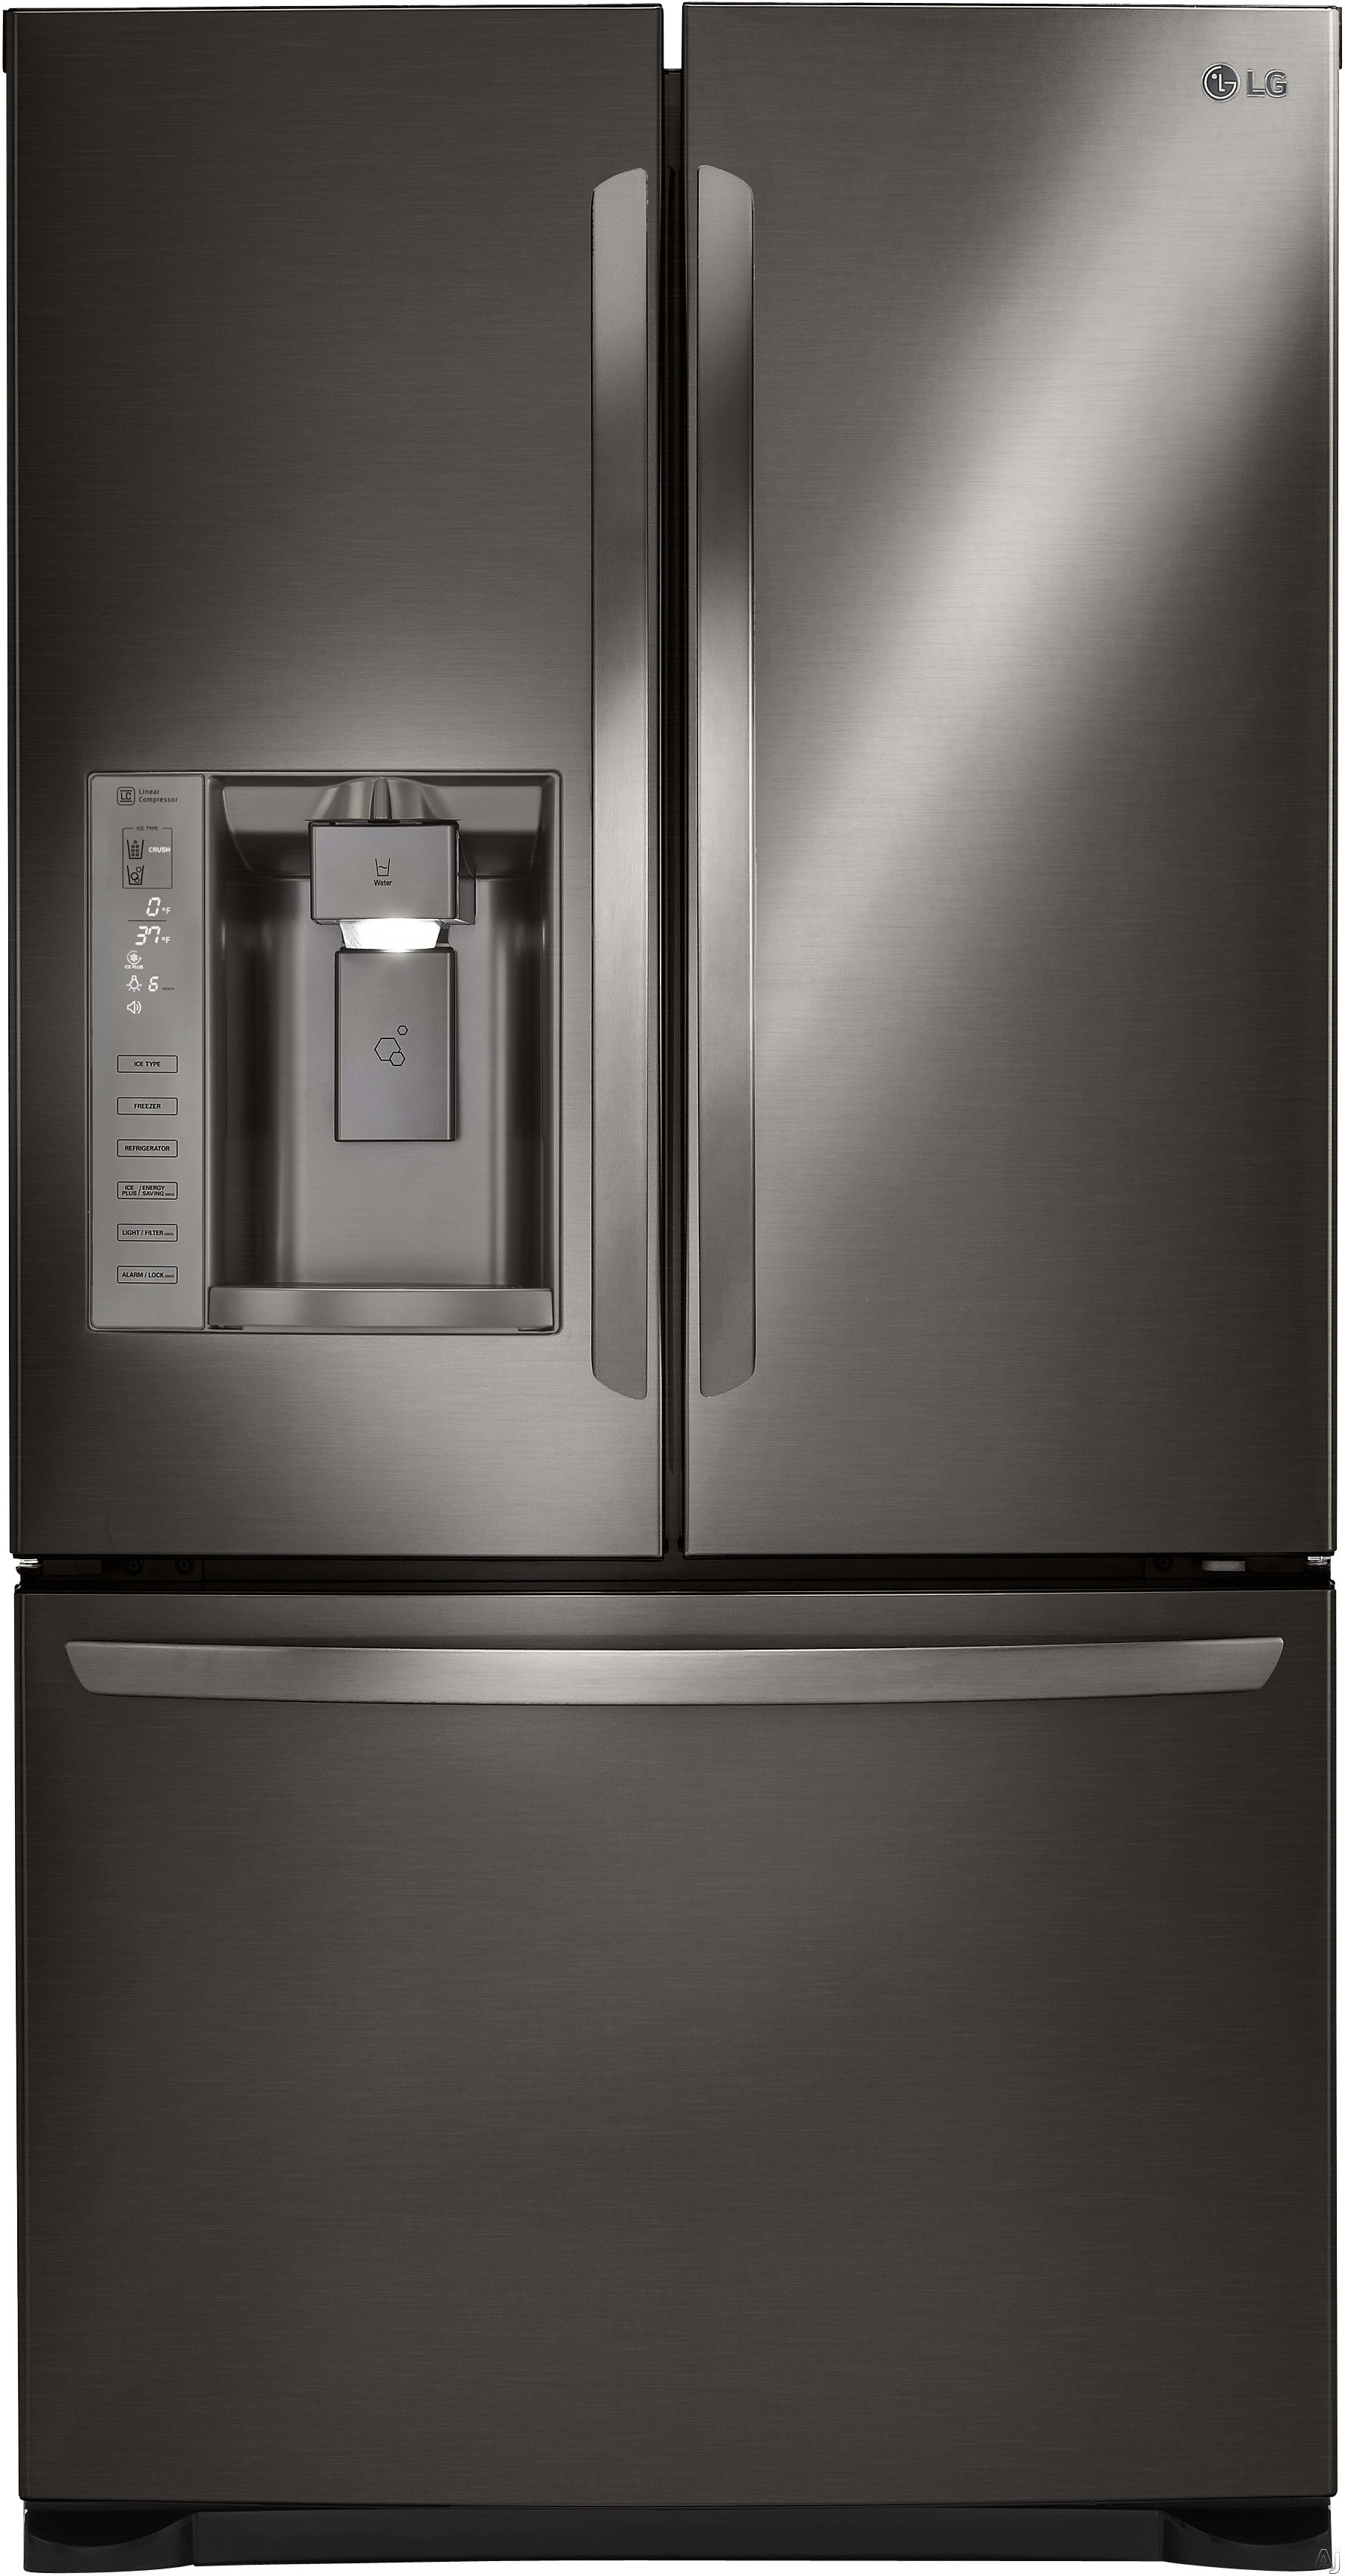 LG LFXS24626D 36 Inch French Door Refrigerator with Linear Compressor, Tall Ice & Water Dispenser®, Slim SpacePlus® Ice System, Air and Water Filtration, Spill Protector™ Glass Shelves, Glide N' Serve® Drawer, ADA Compliant, ENERGY STAR® and 24.1 cu. ft. Capacity